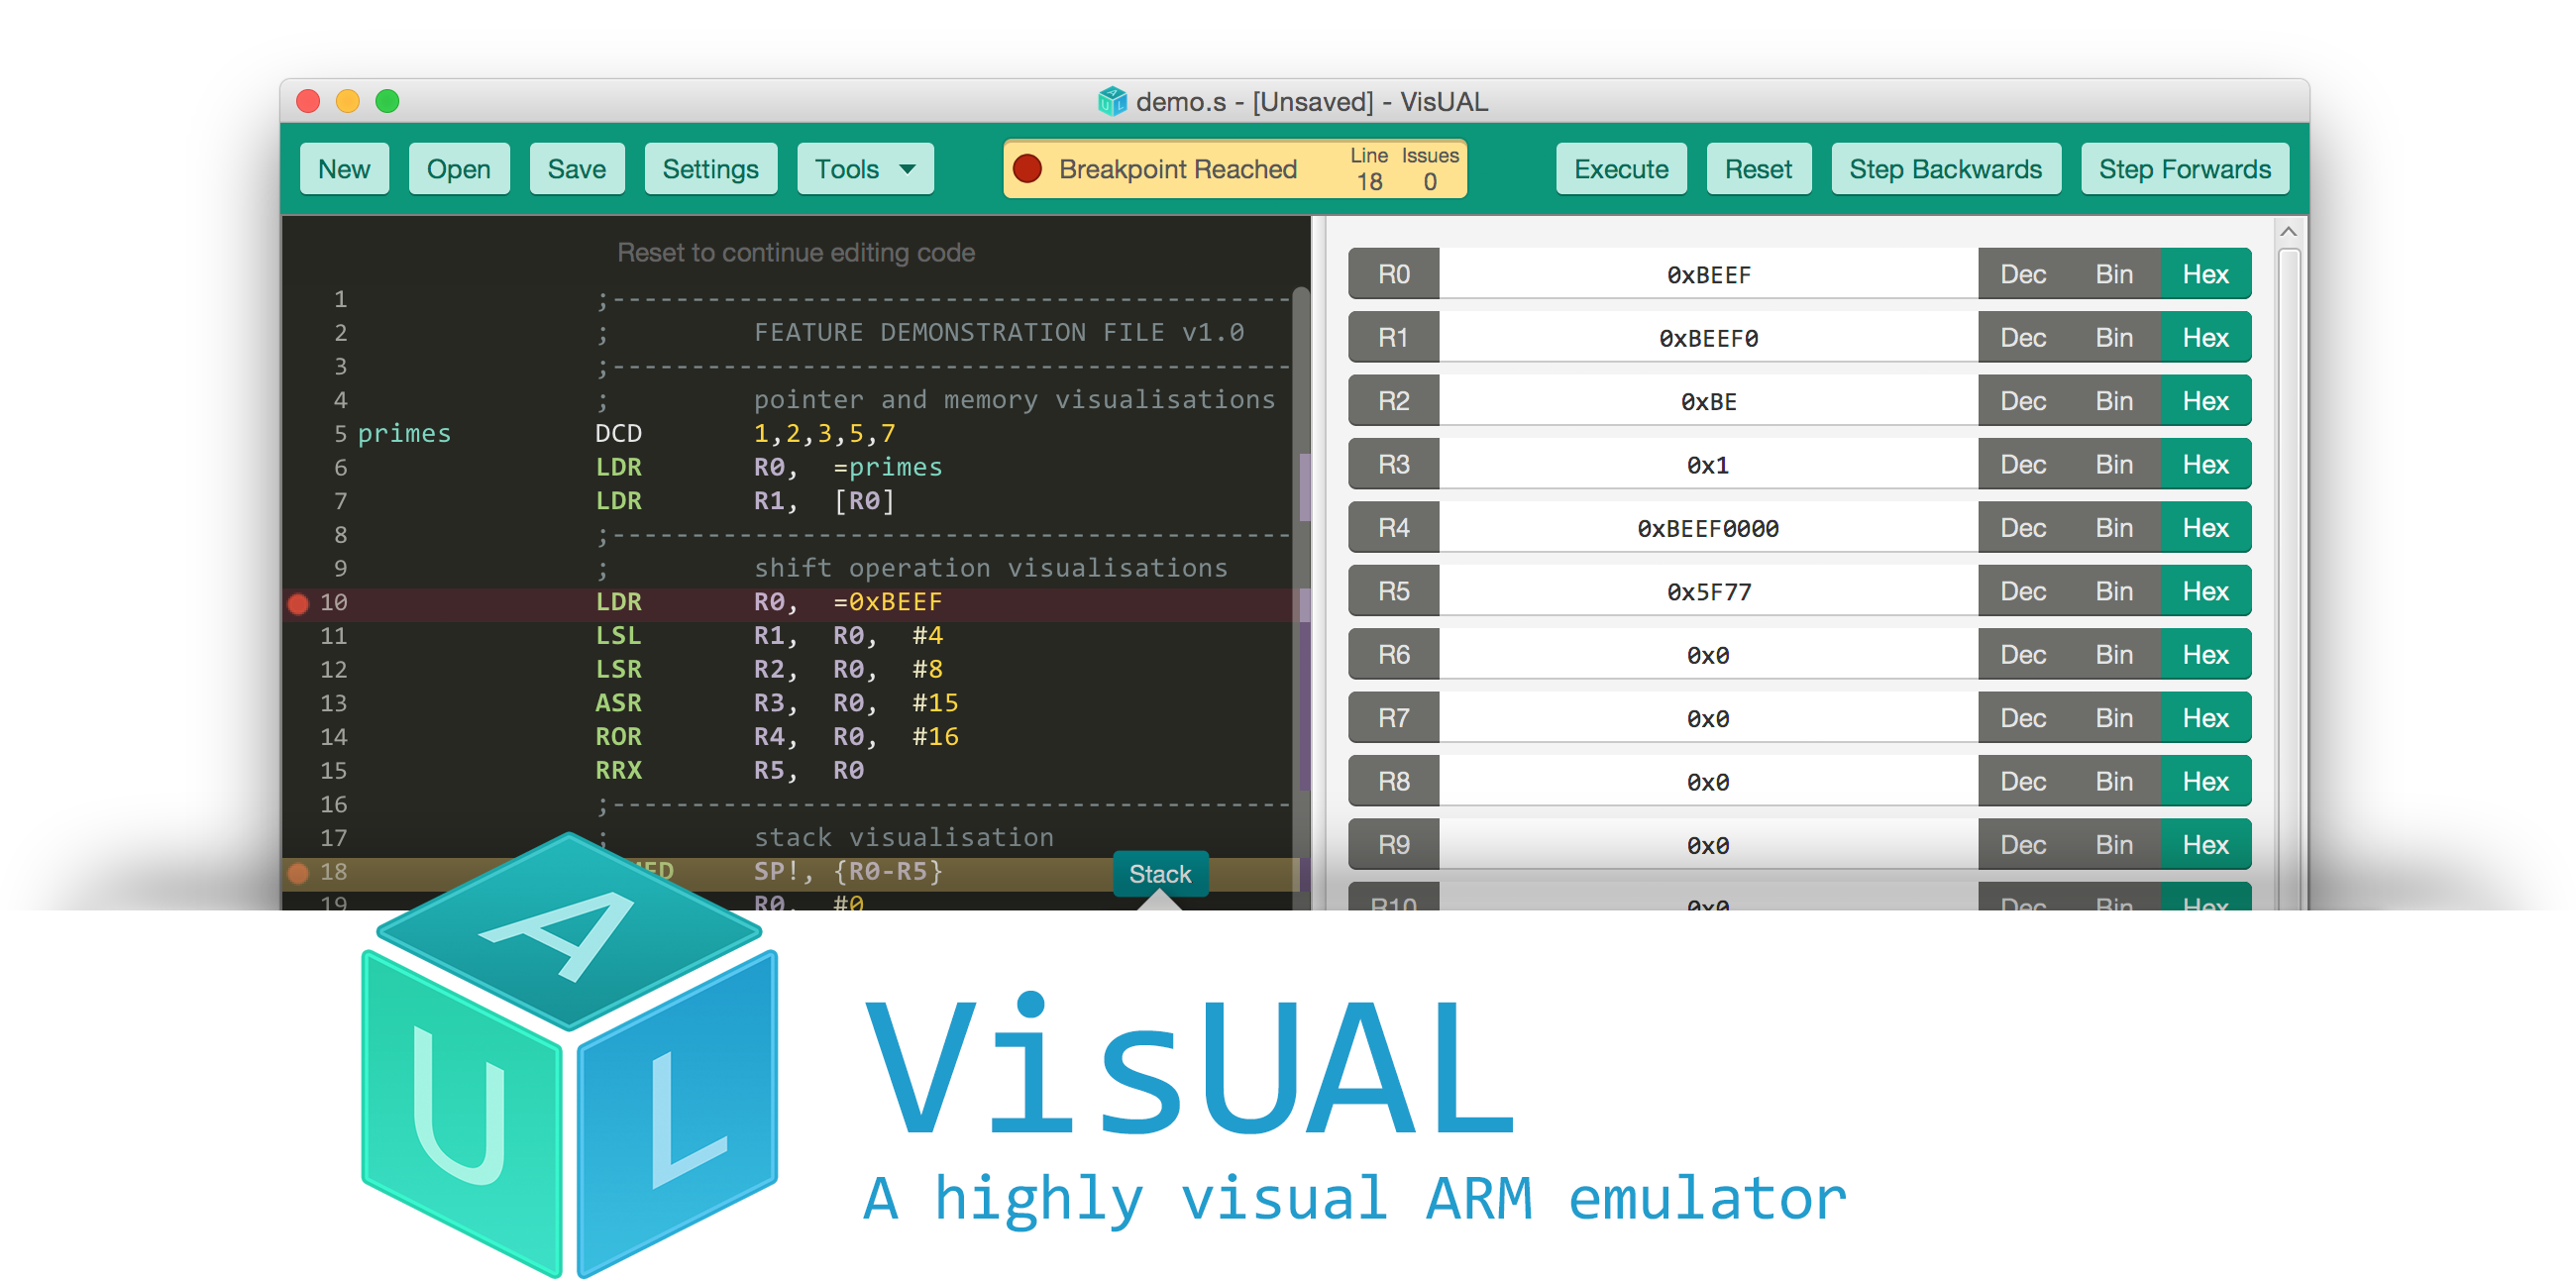 VisUAL - A highly visual ARM emulator